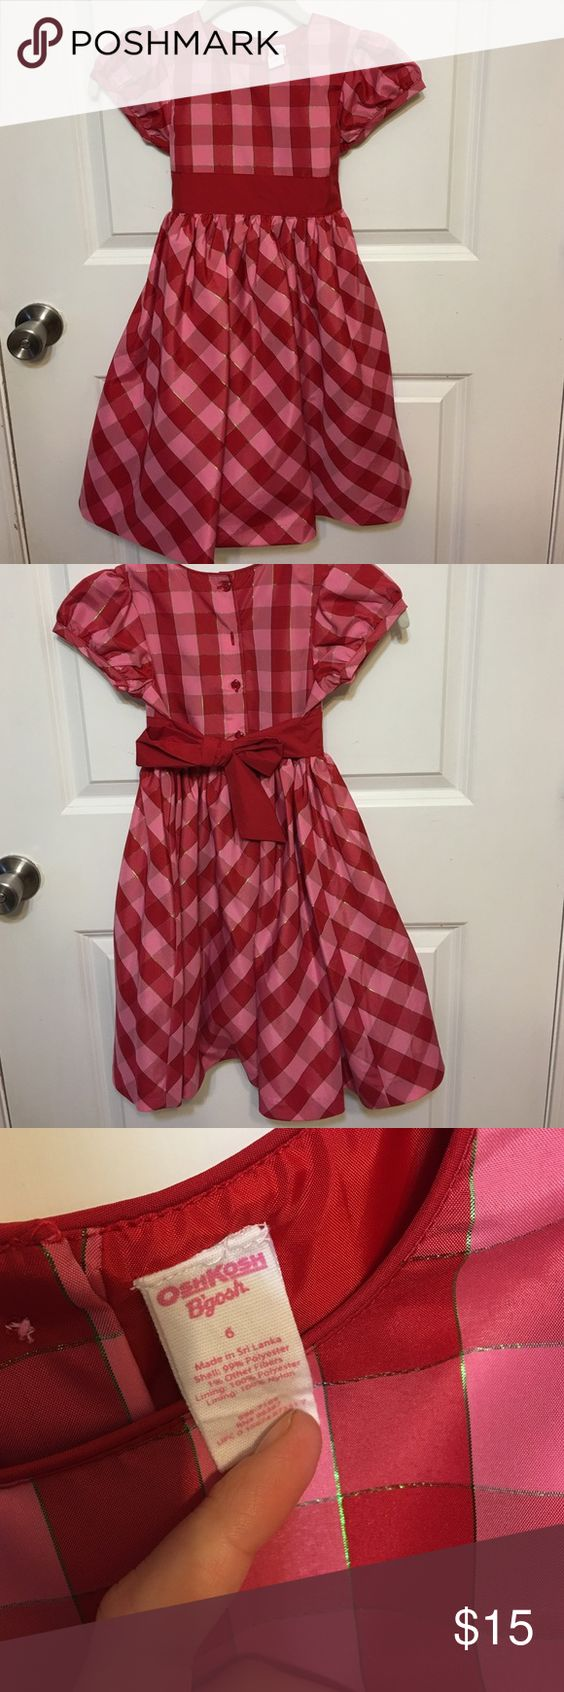 Adorable red and pink dress *PERFECT FOR THE HOLIDAYS* Osh Kosh Bgosh red and pink plaid dress with iridescent small green accents. Red ribbon tied belt with buttoned down back. Tulle under lining. Never worn. Size 6. Osh Kosh Dresses Formal